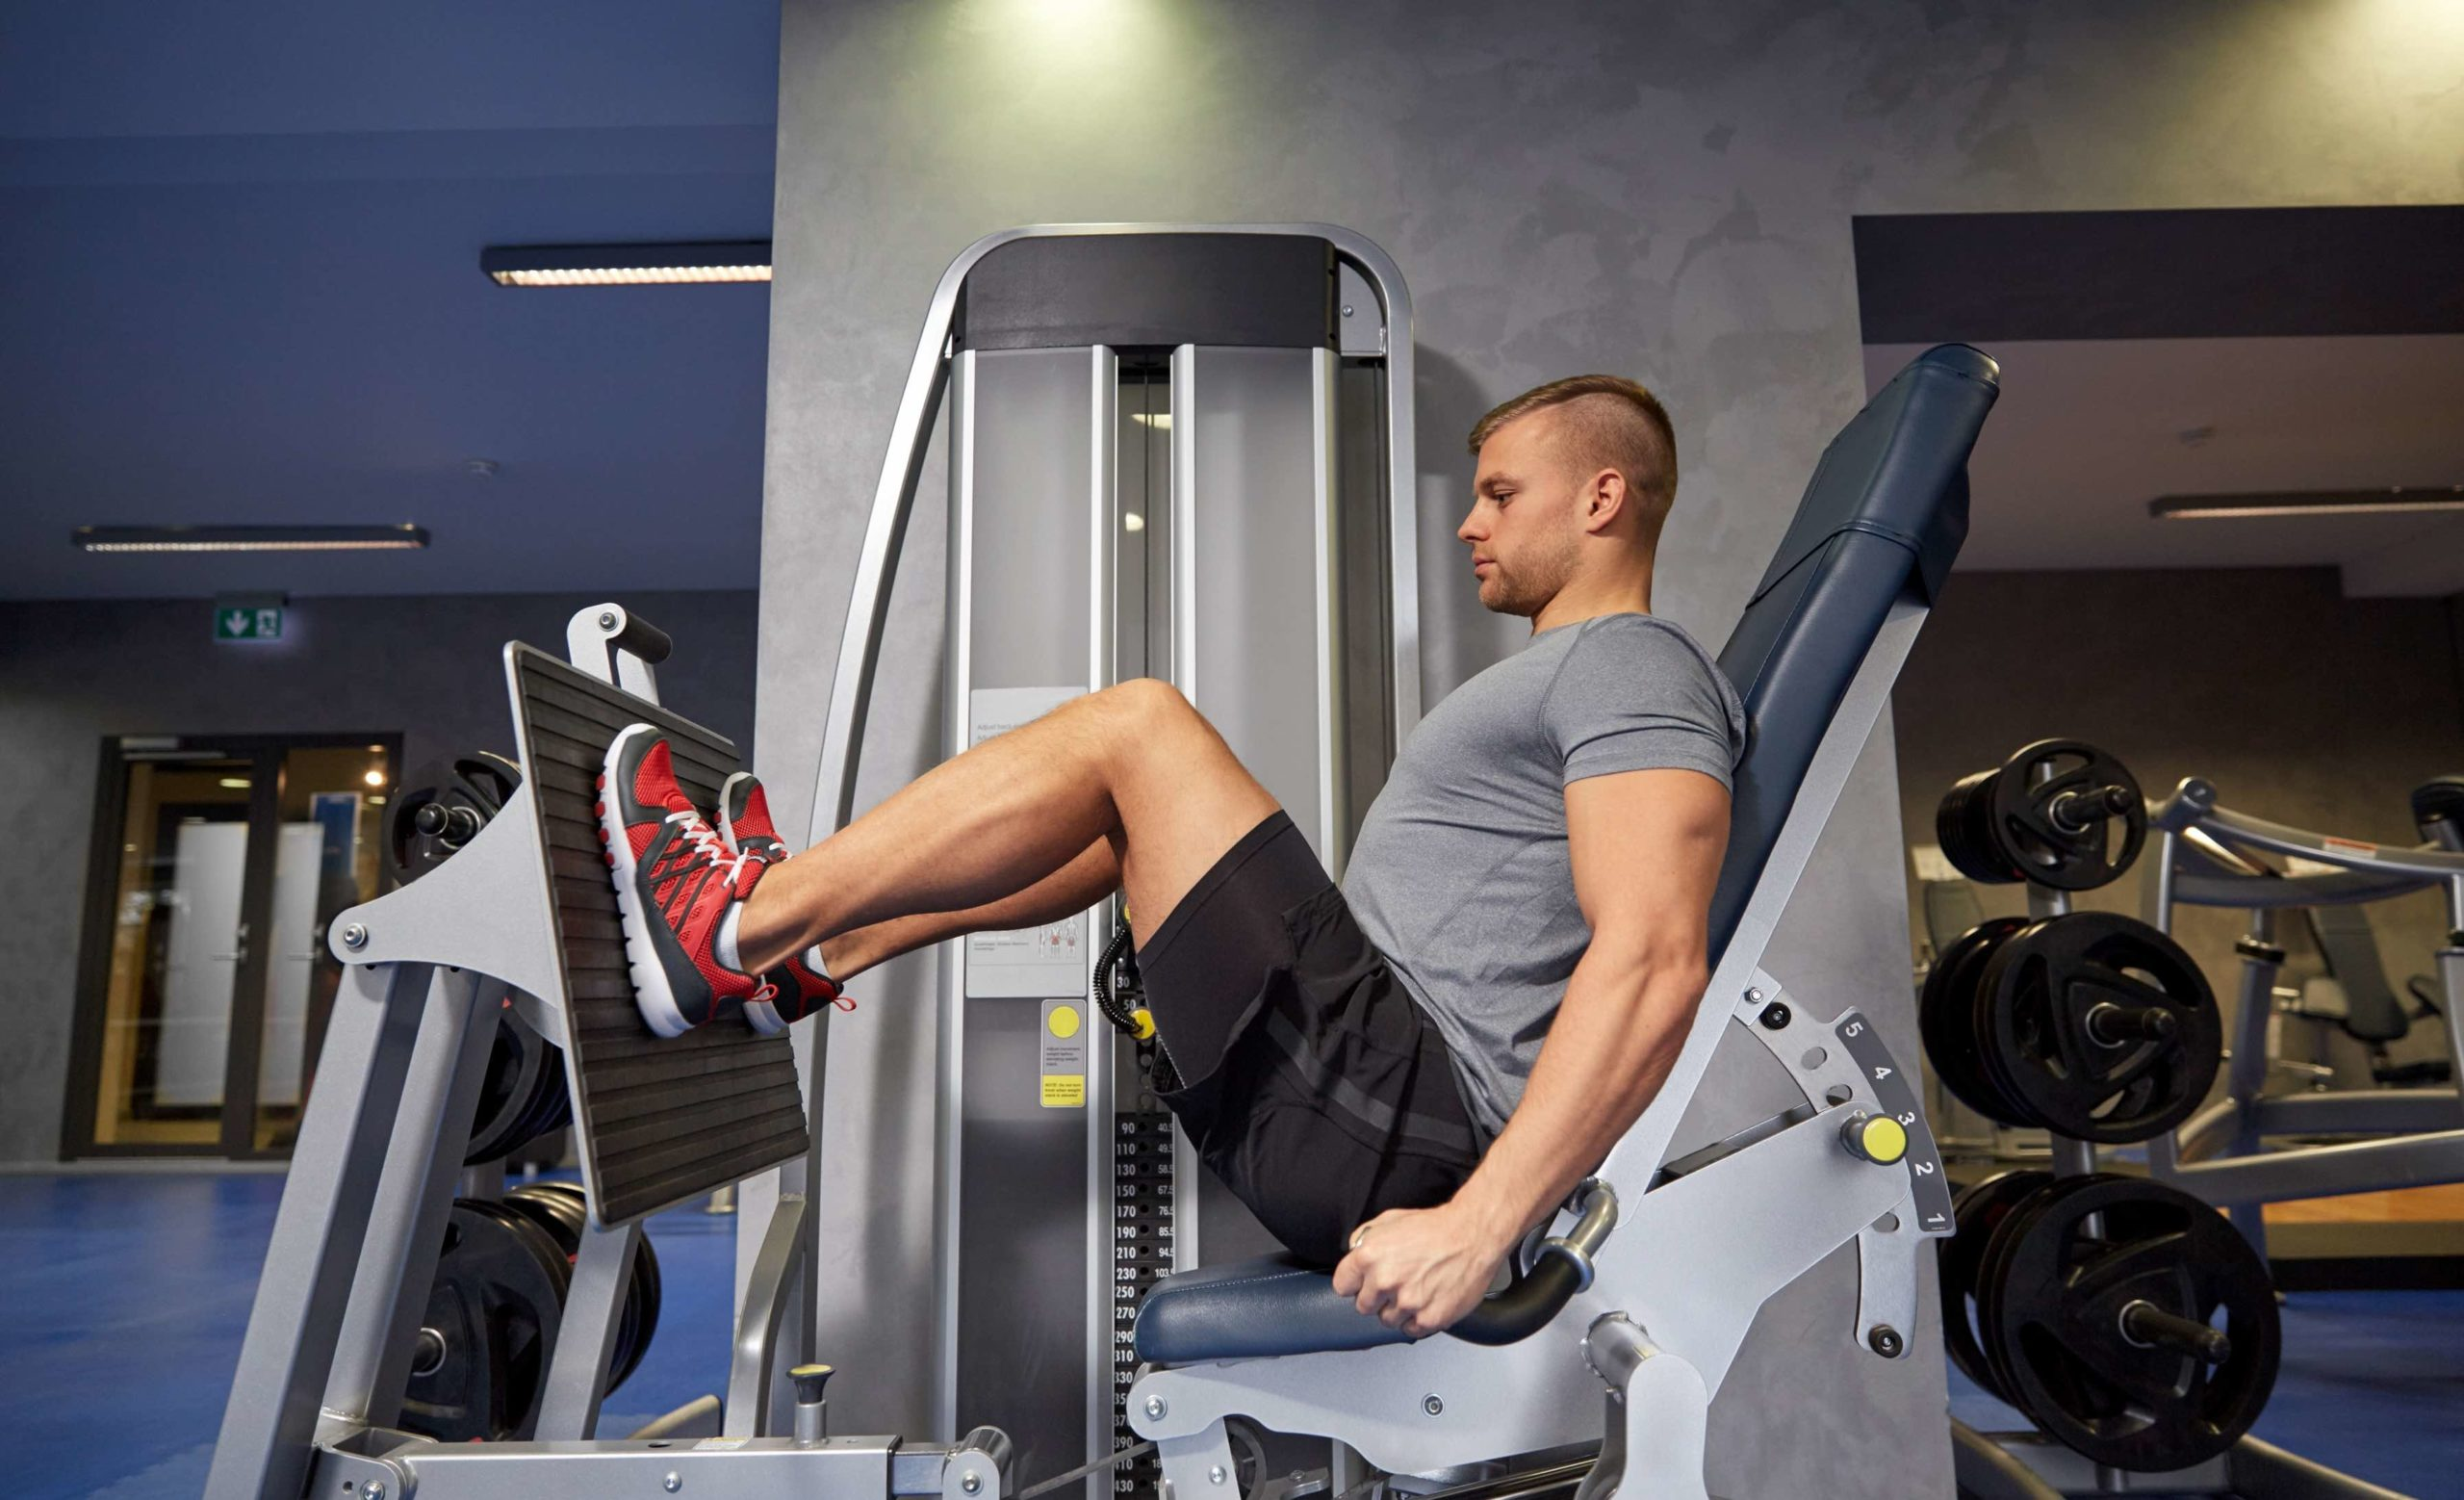 Leg strength training protects against back pain